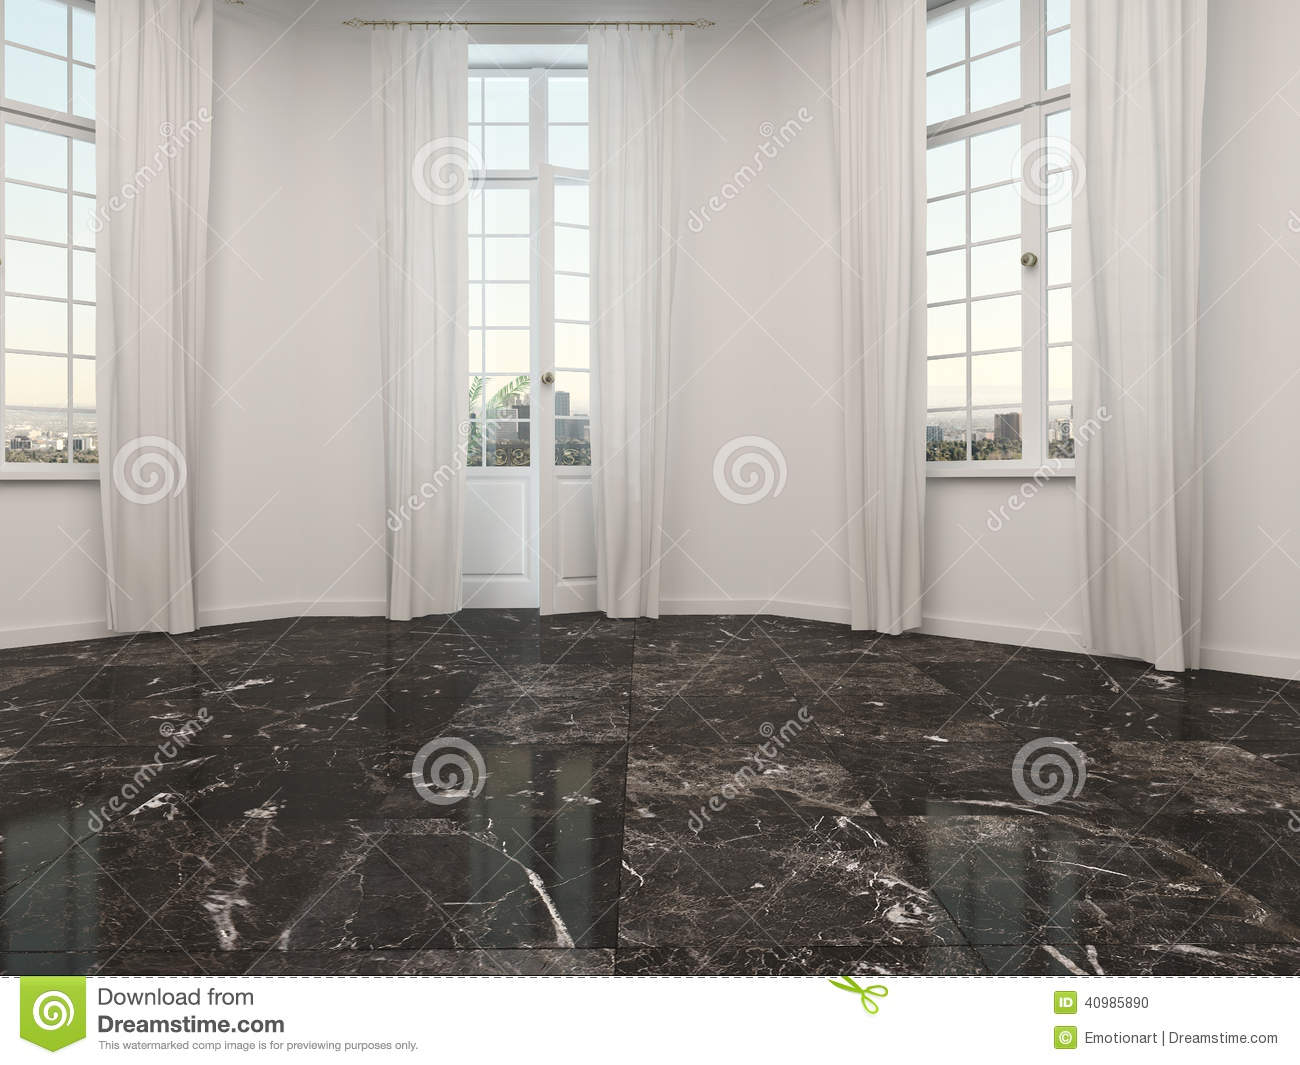 Empty Room With Marble Floor And Patio Doors Stock